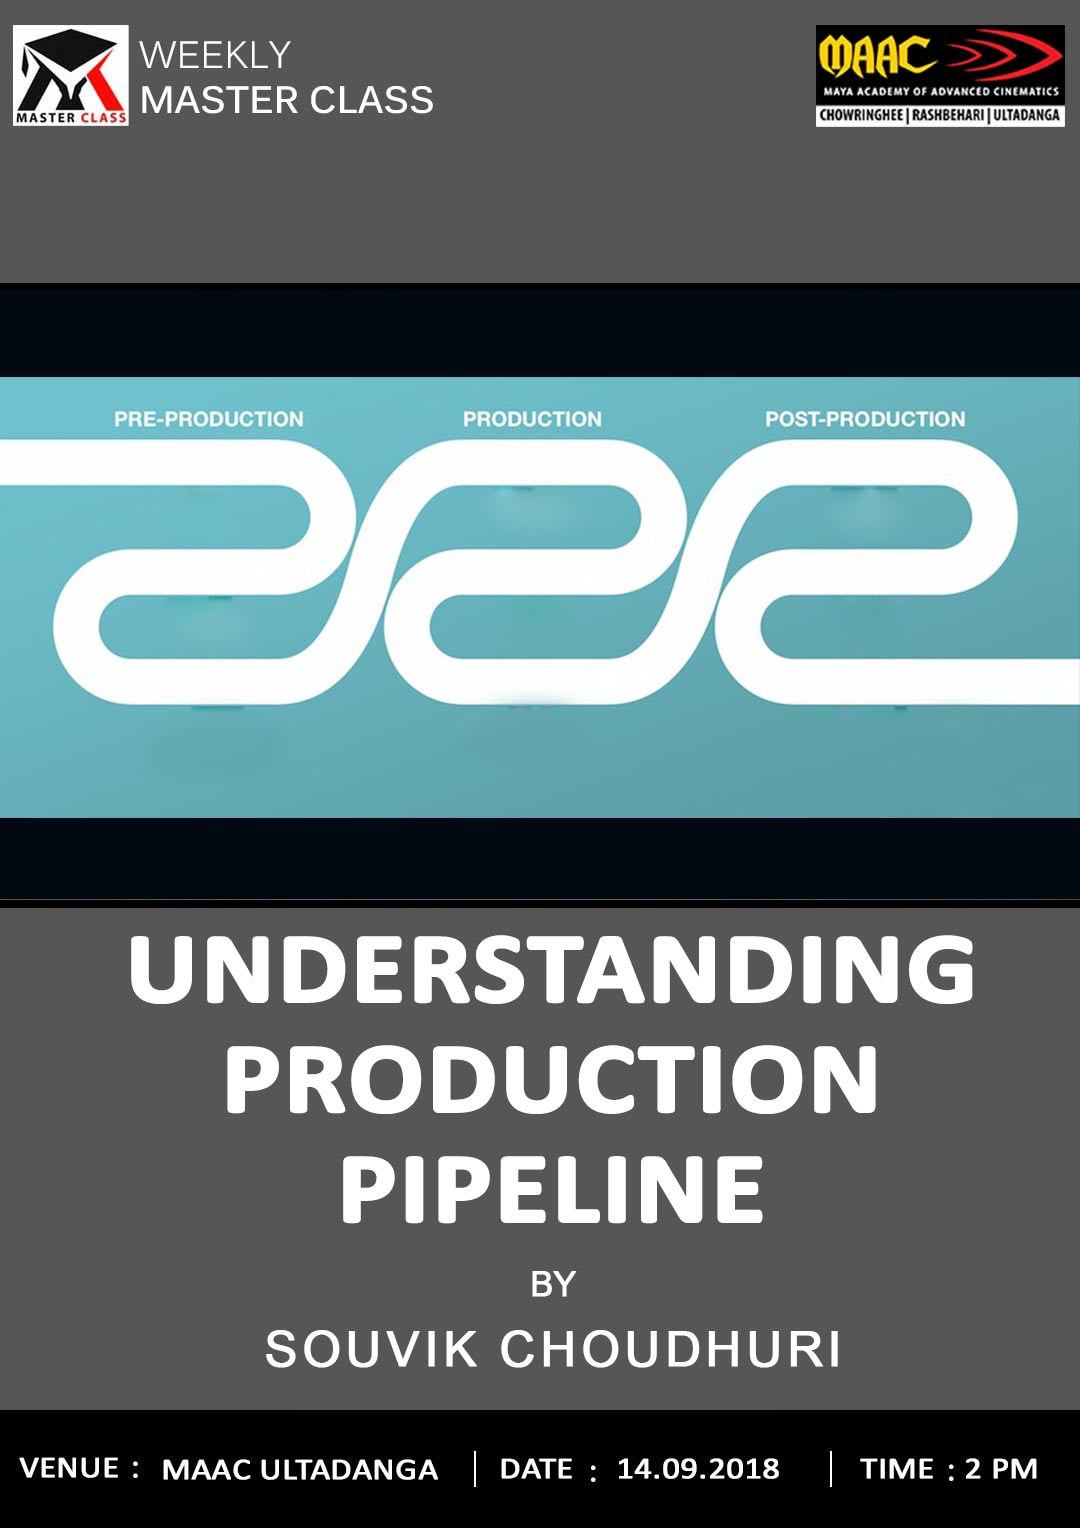 Weekly Master Class on UNDERSTANDING PRODUCTION PIPELINE